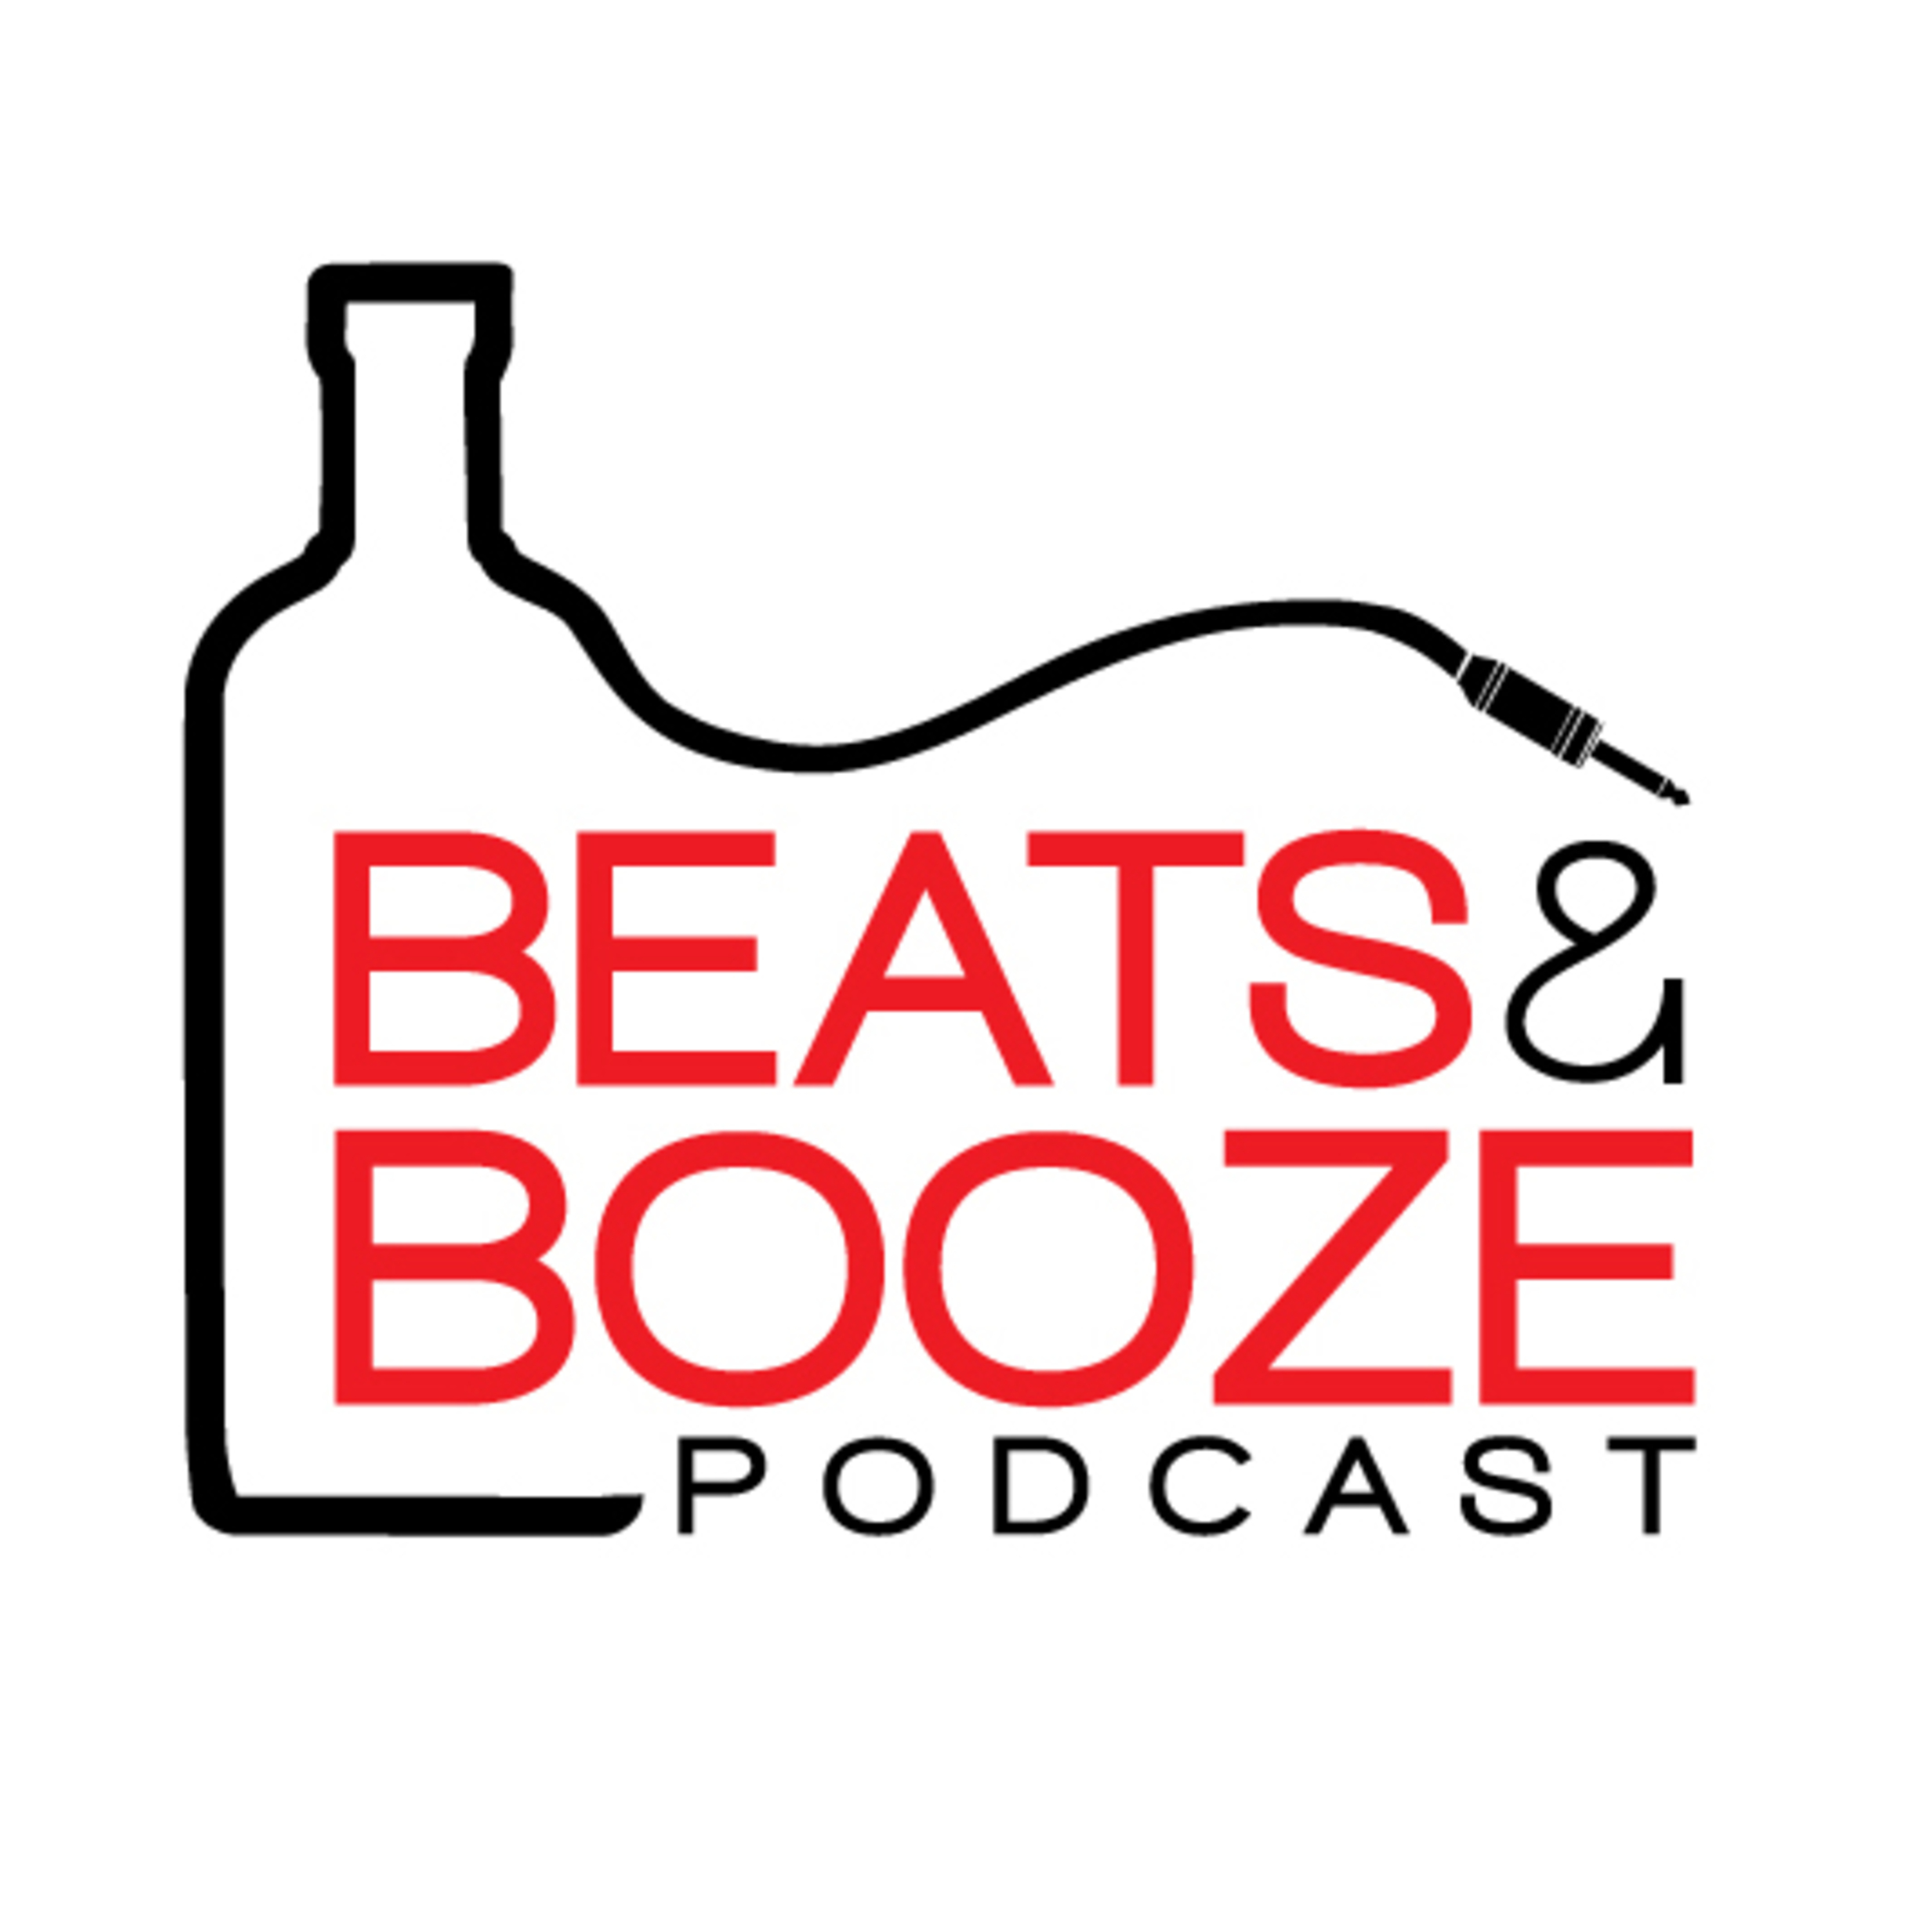 Beats and Booze Podcast